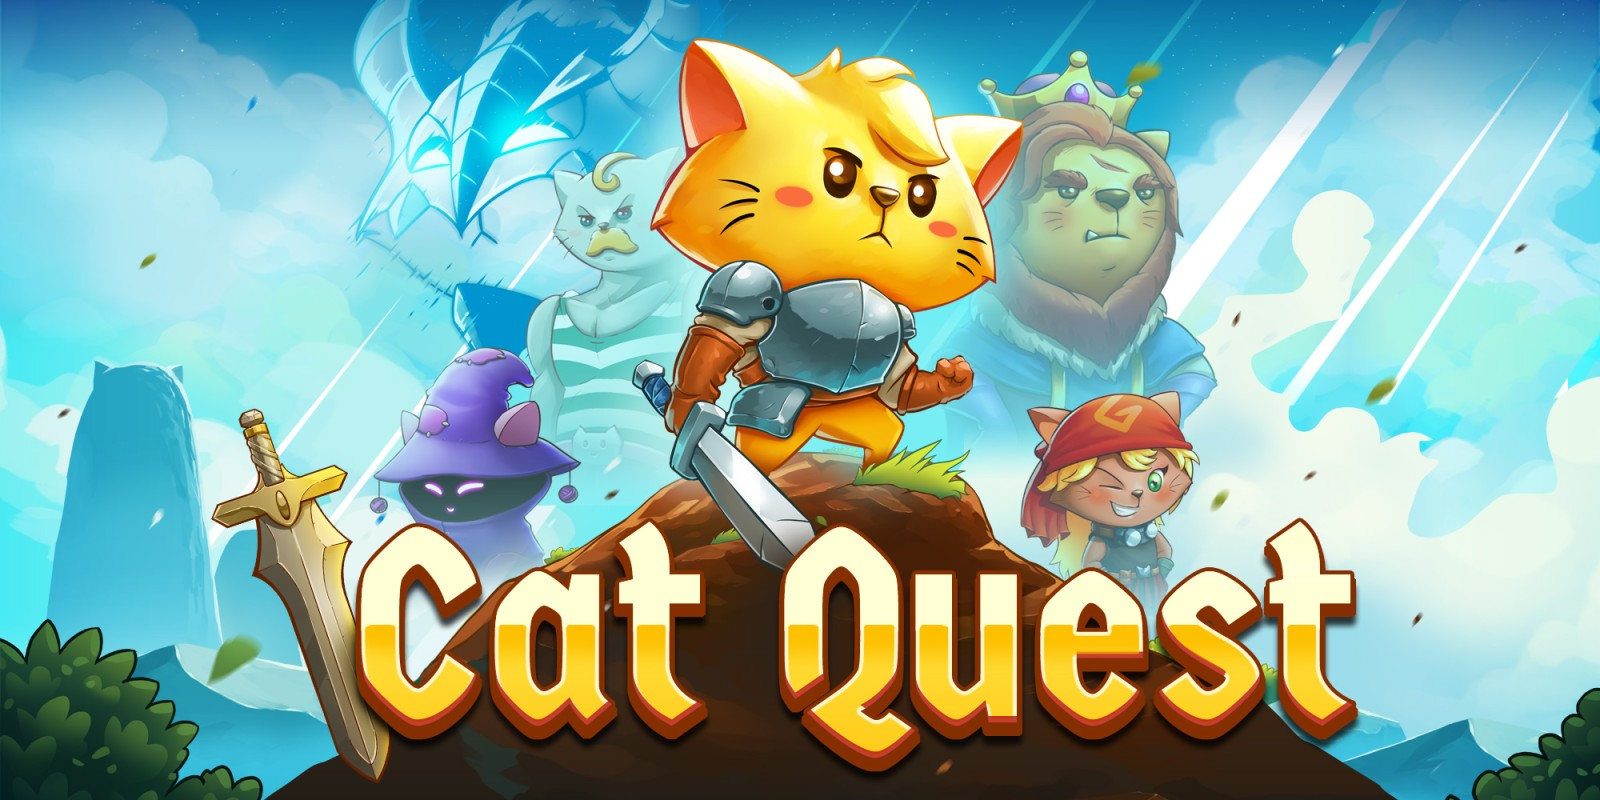 Cat Quest is the Purrrfect casual RPG for Cat Lovers